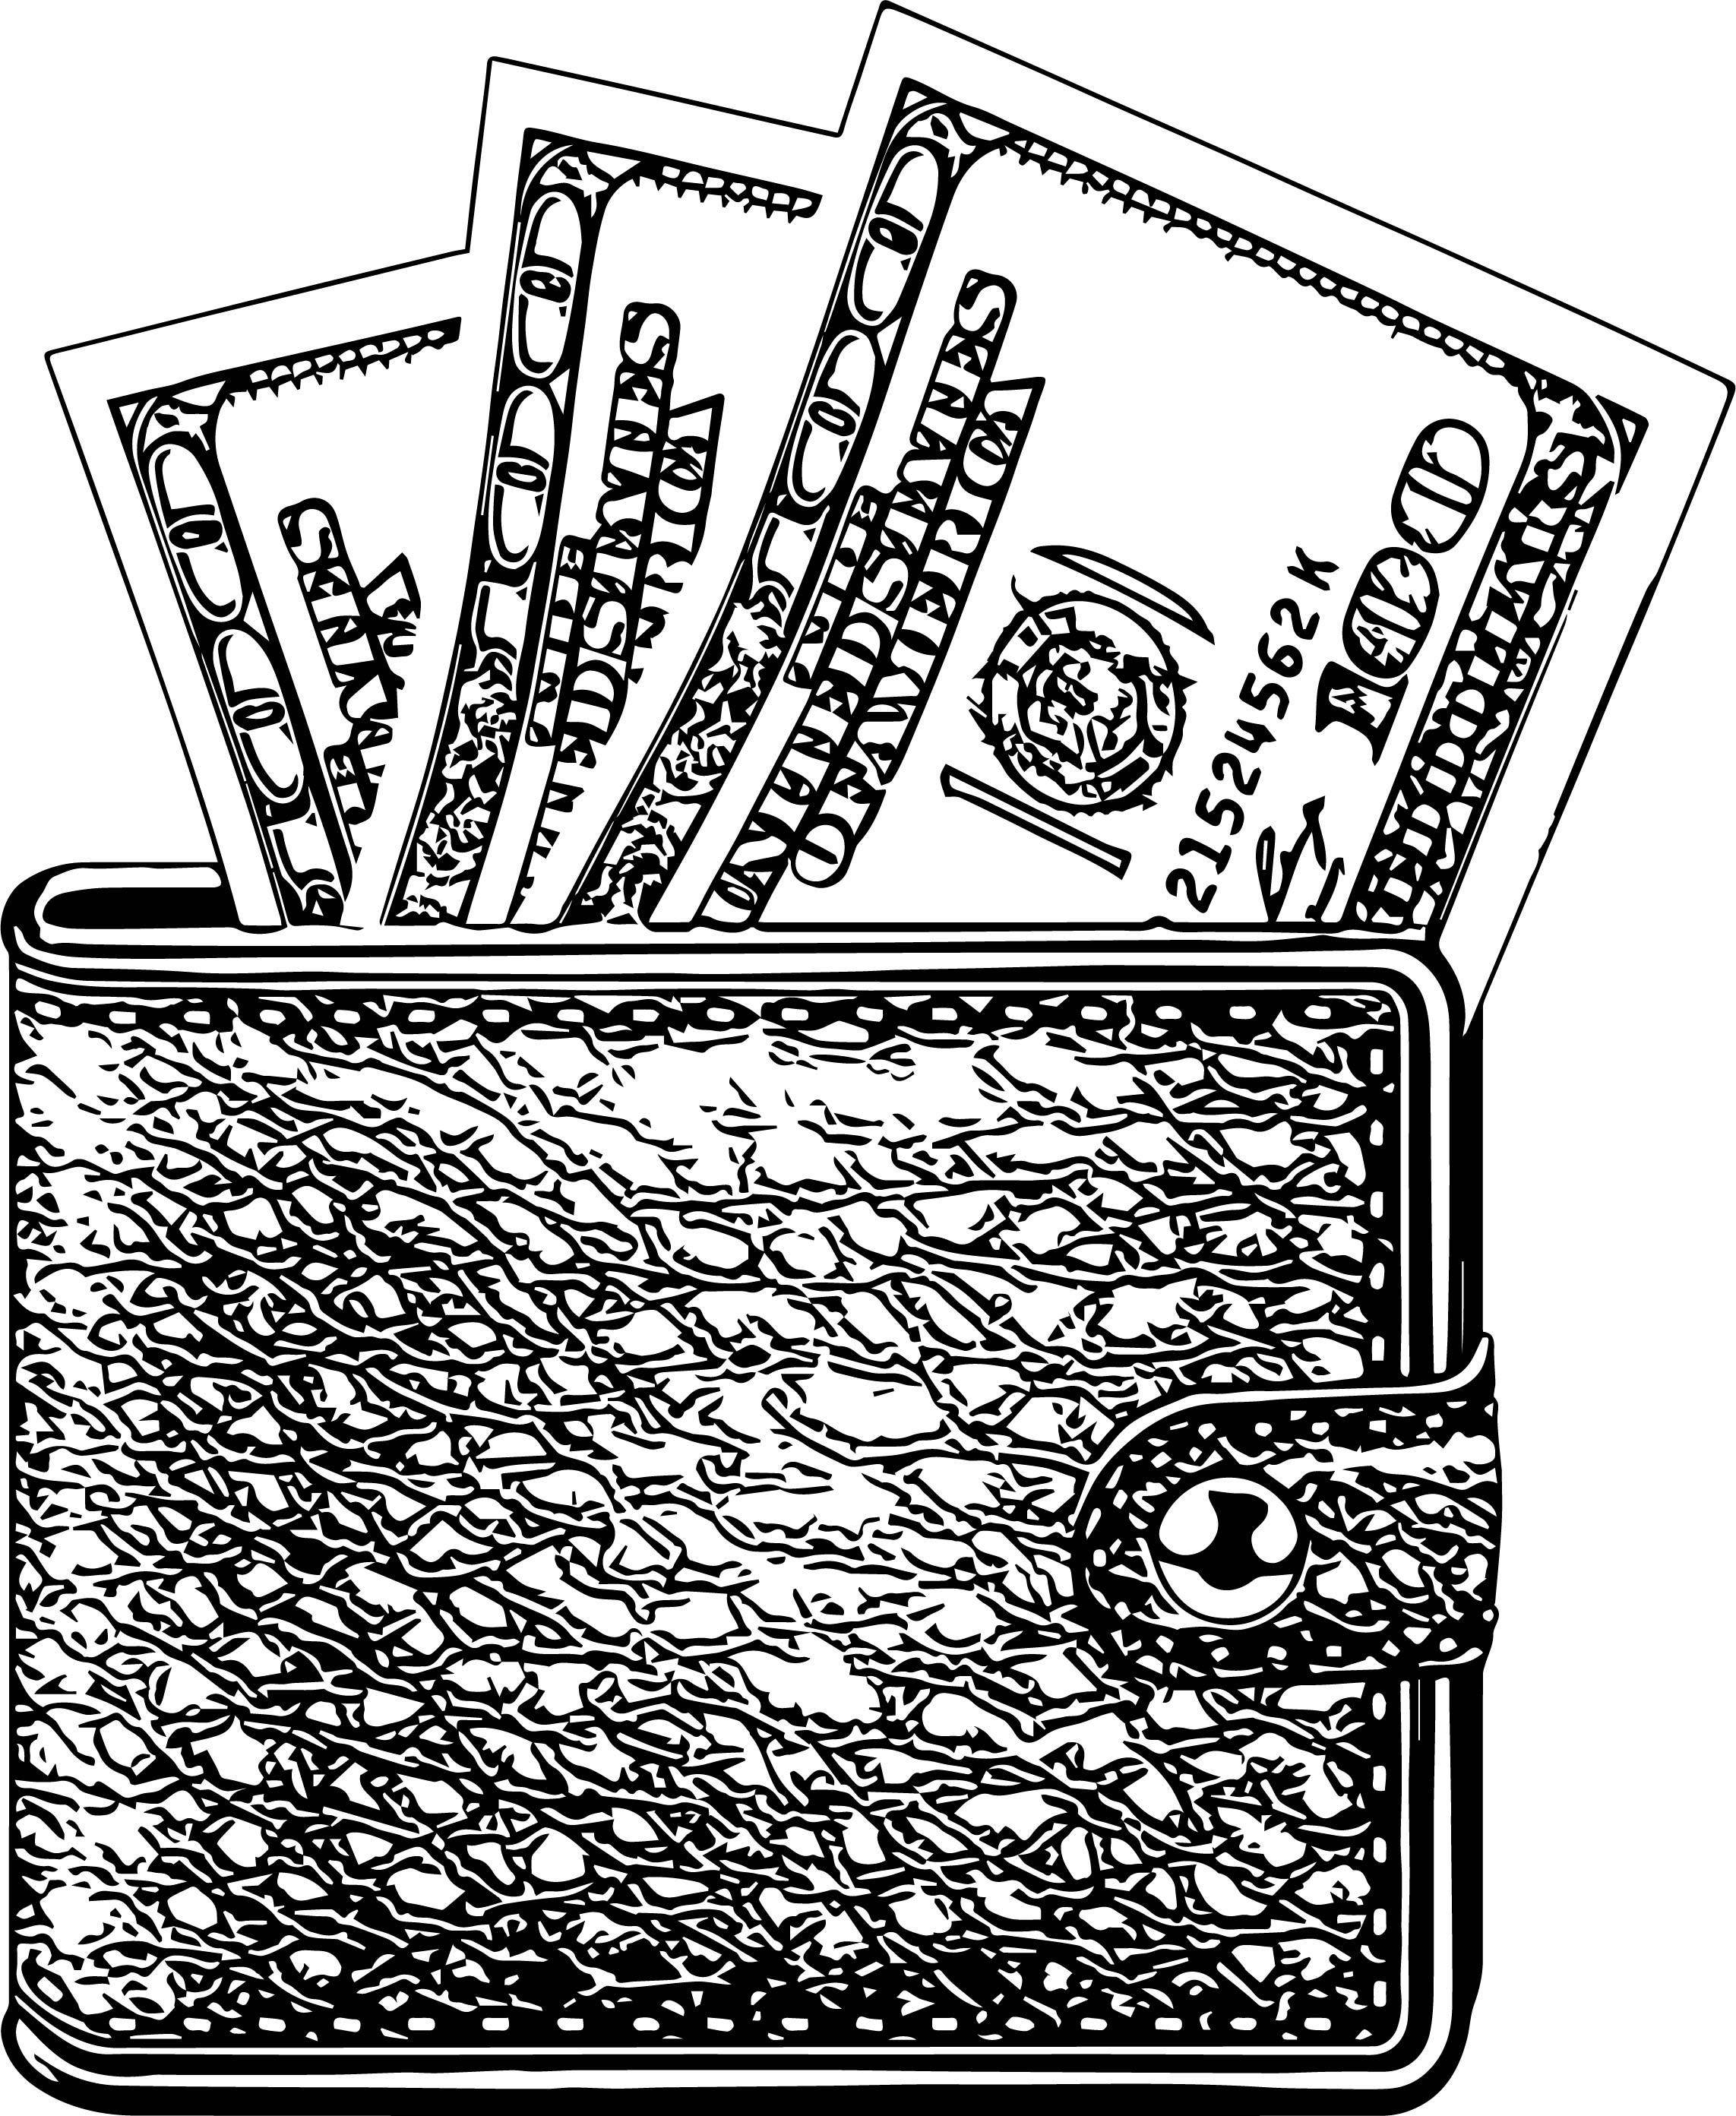 Black Wallet Coloring Page